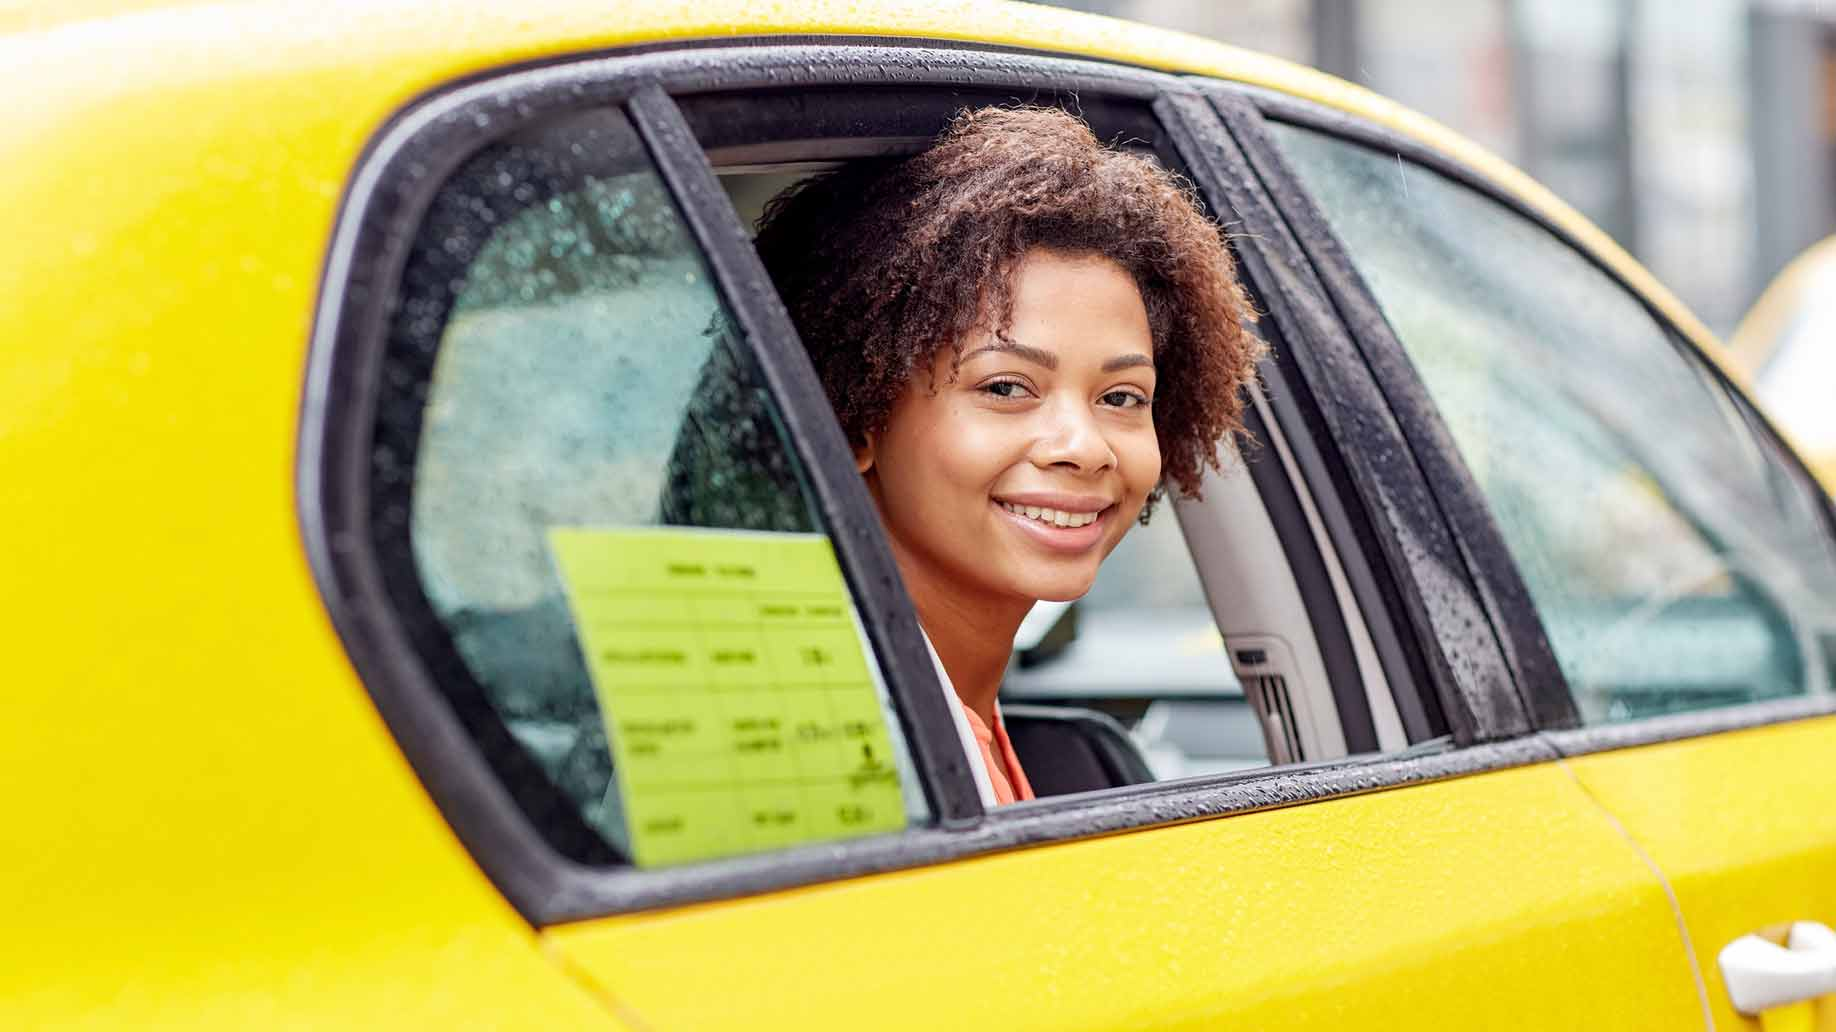 woman in a taxi cab